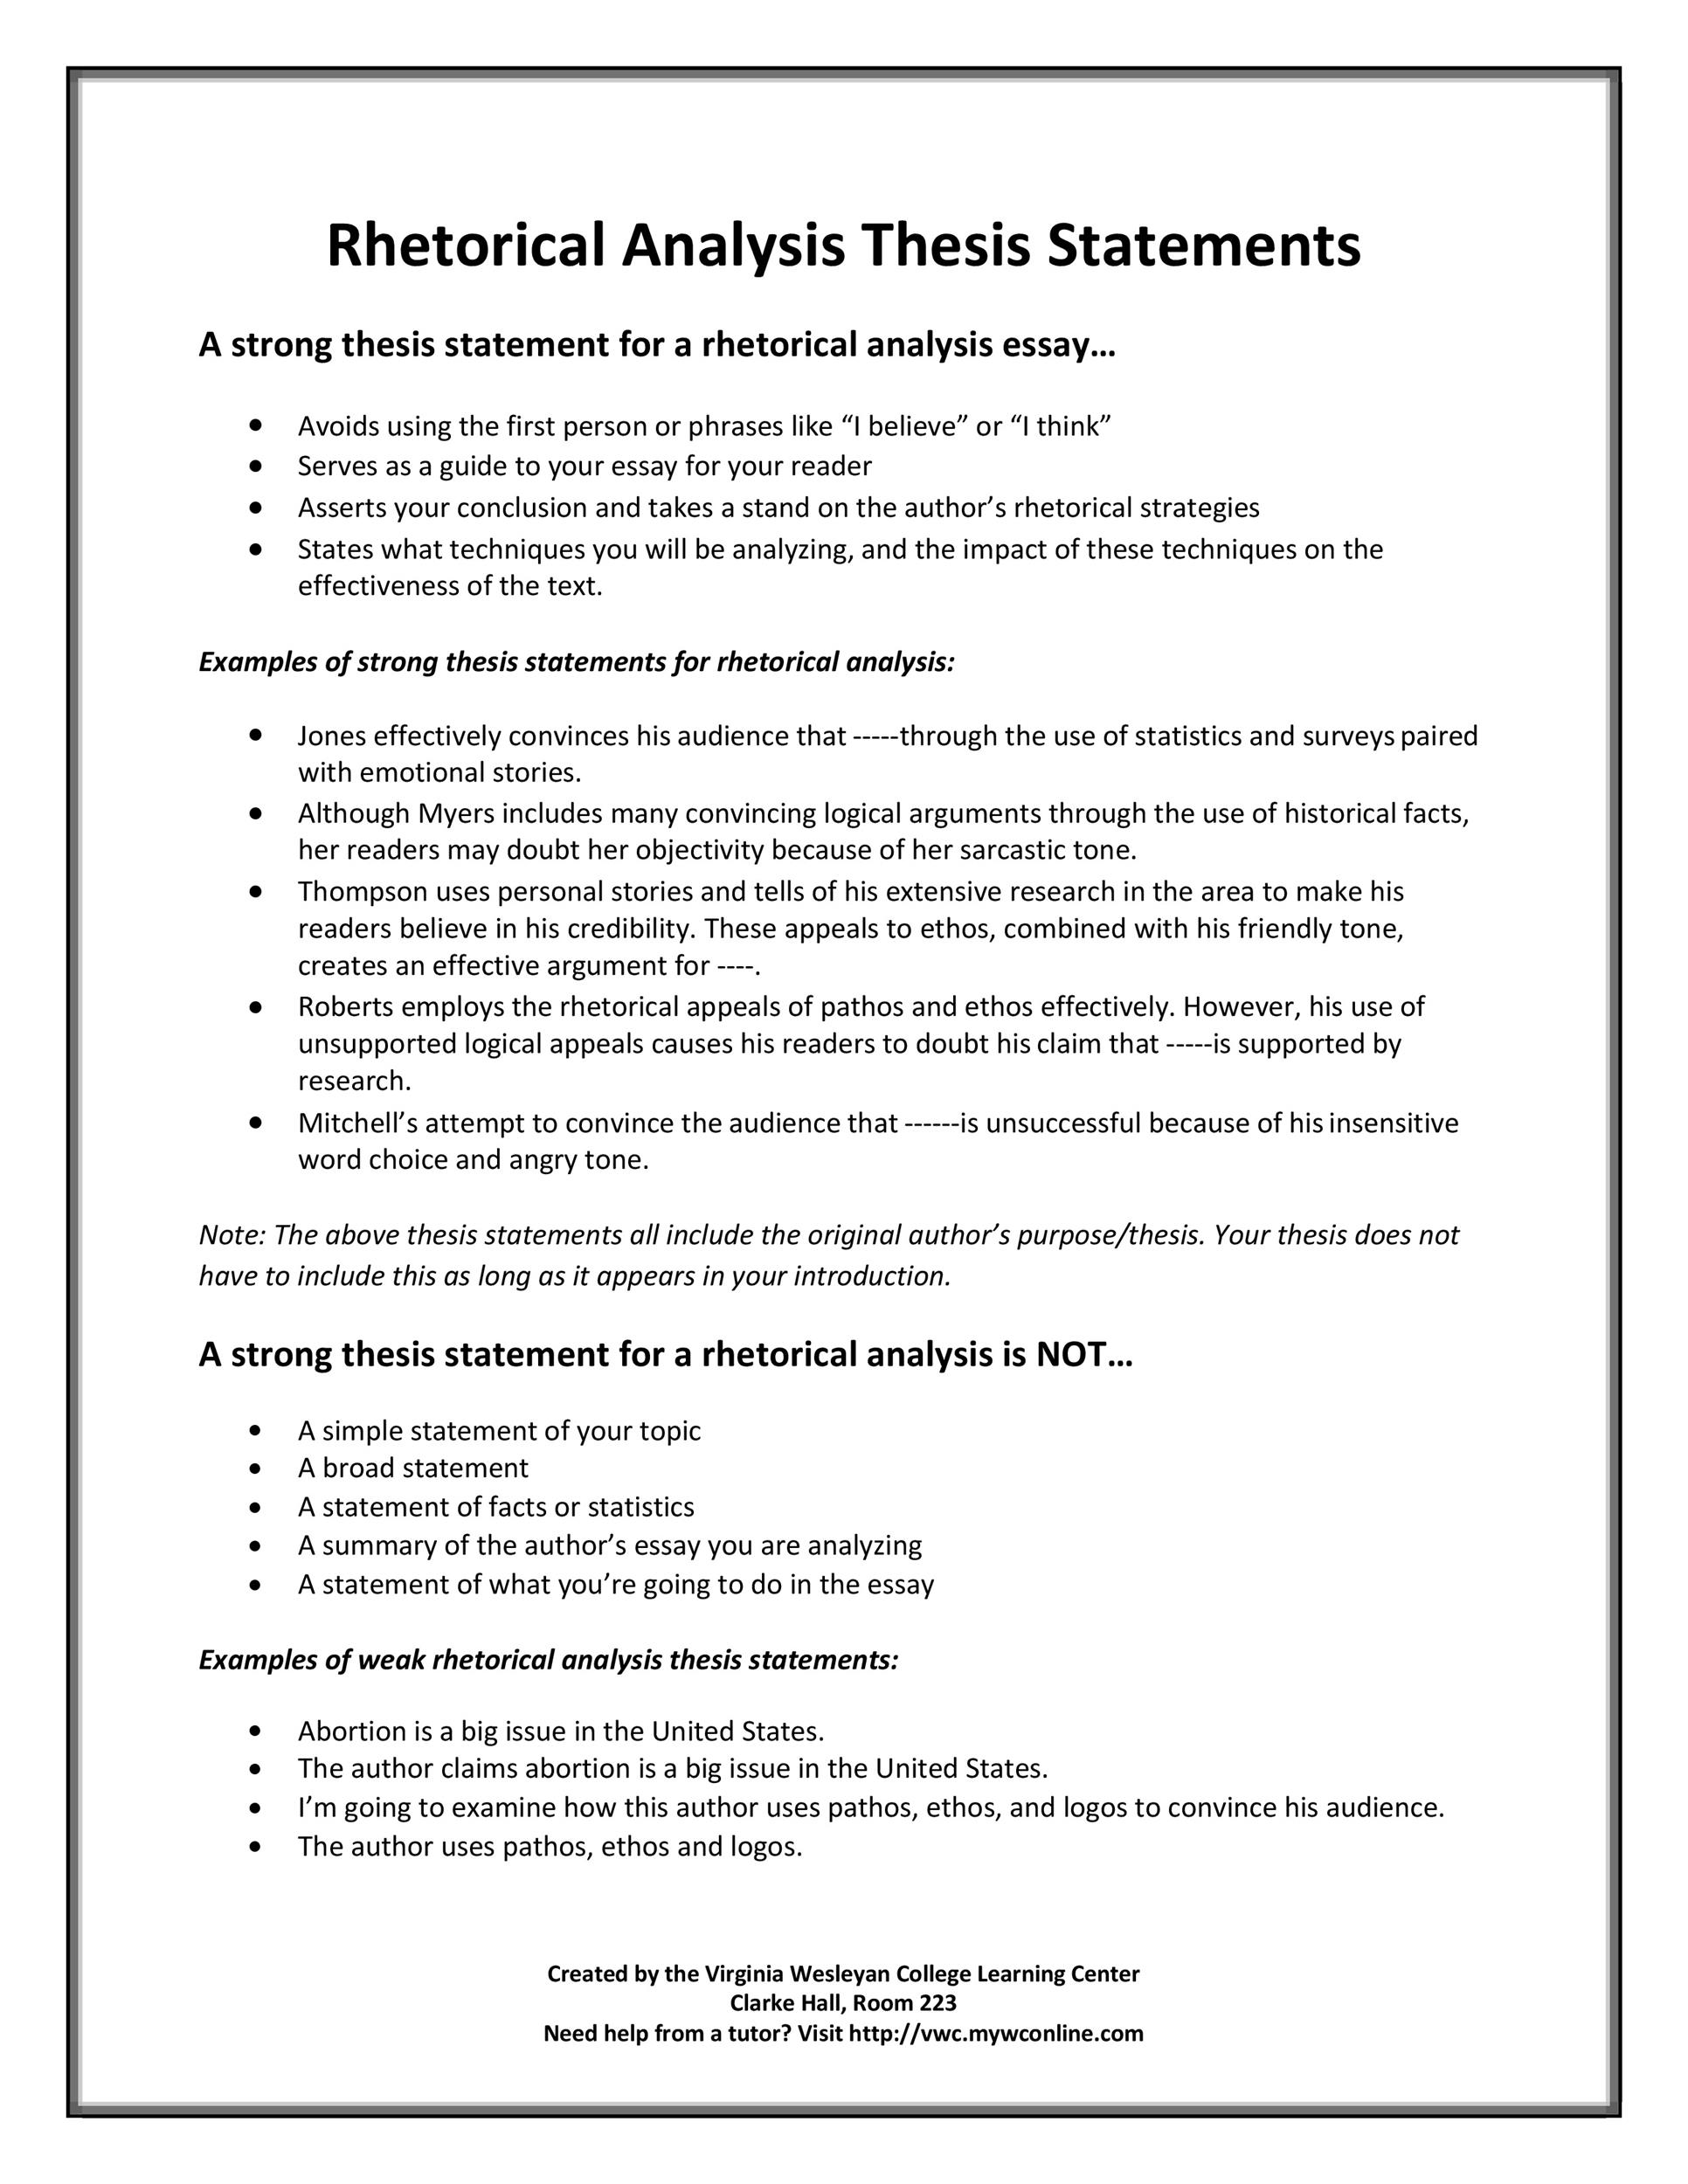 What can an effective analytical essay be about an effective analytical essay